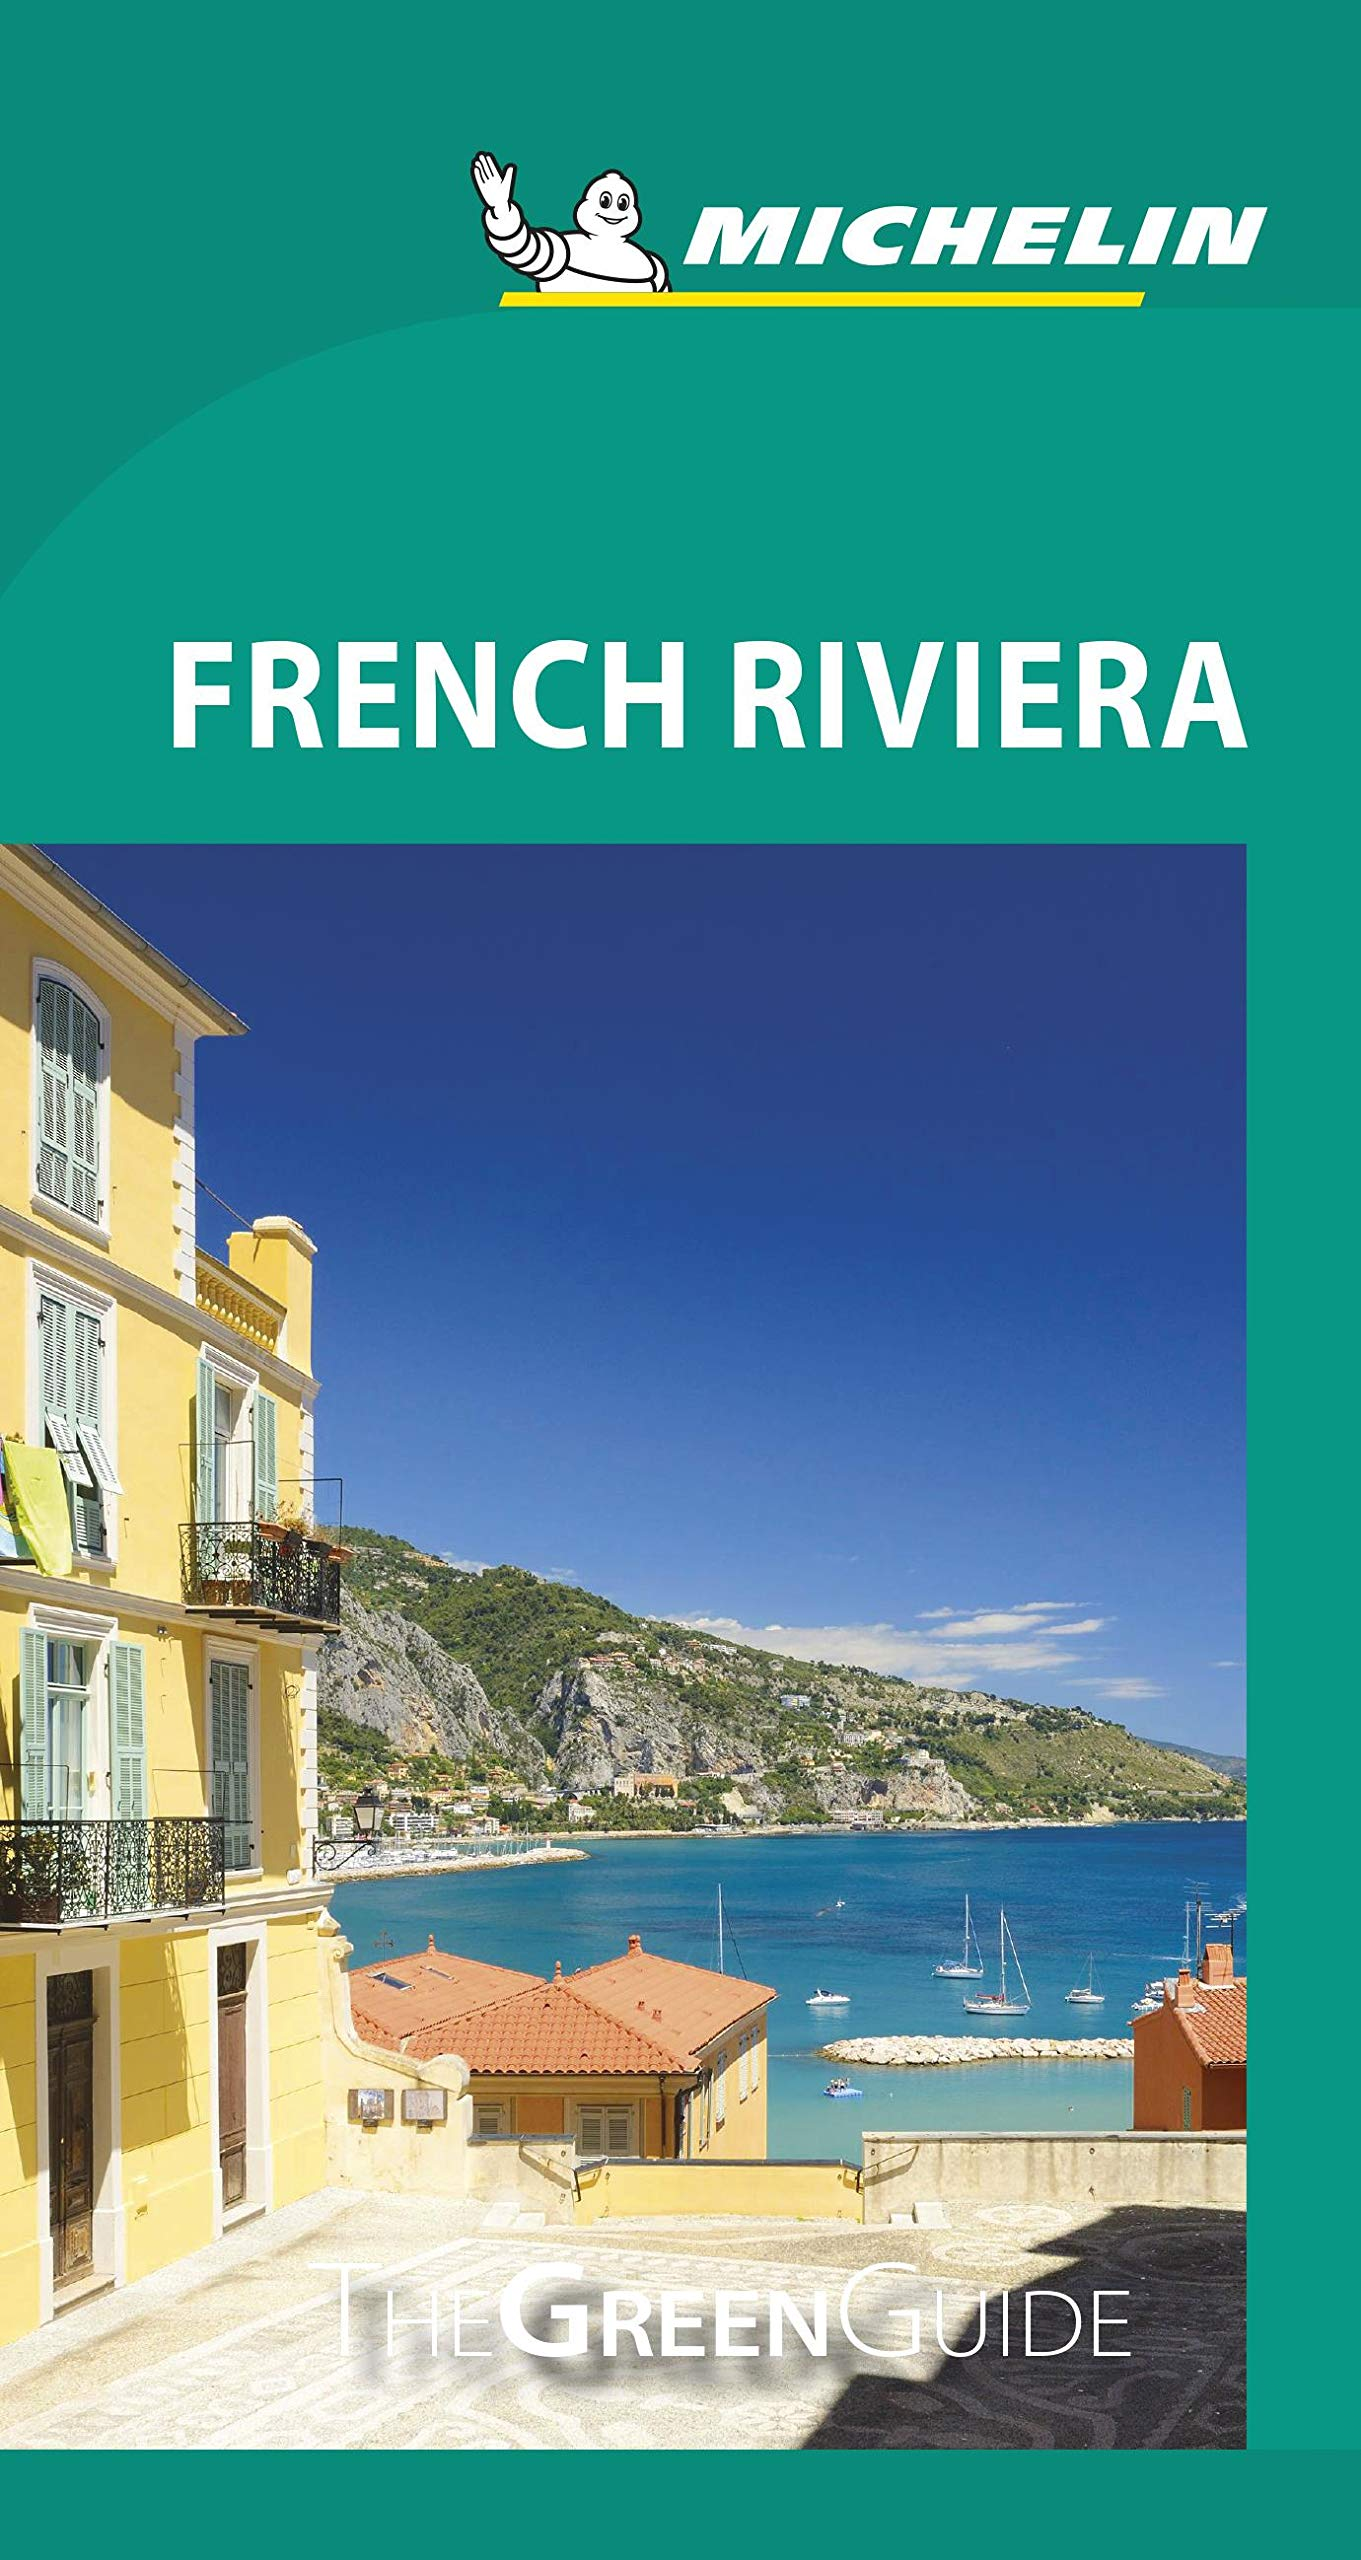 Michelin Green Guide French Riviera Travel Guide Green Guide Michelin Michelin 9782067206625 Amazon Com Books